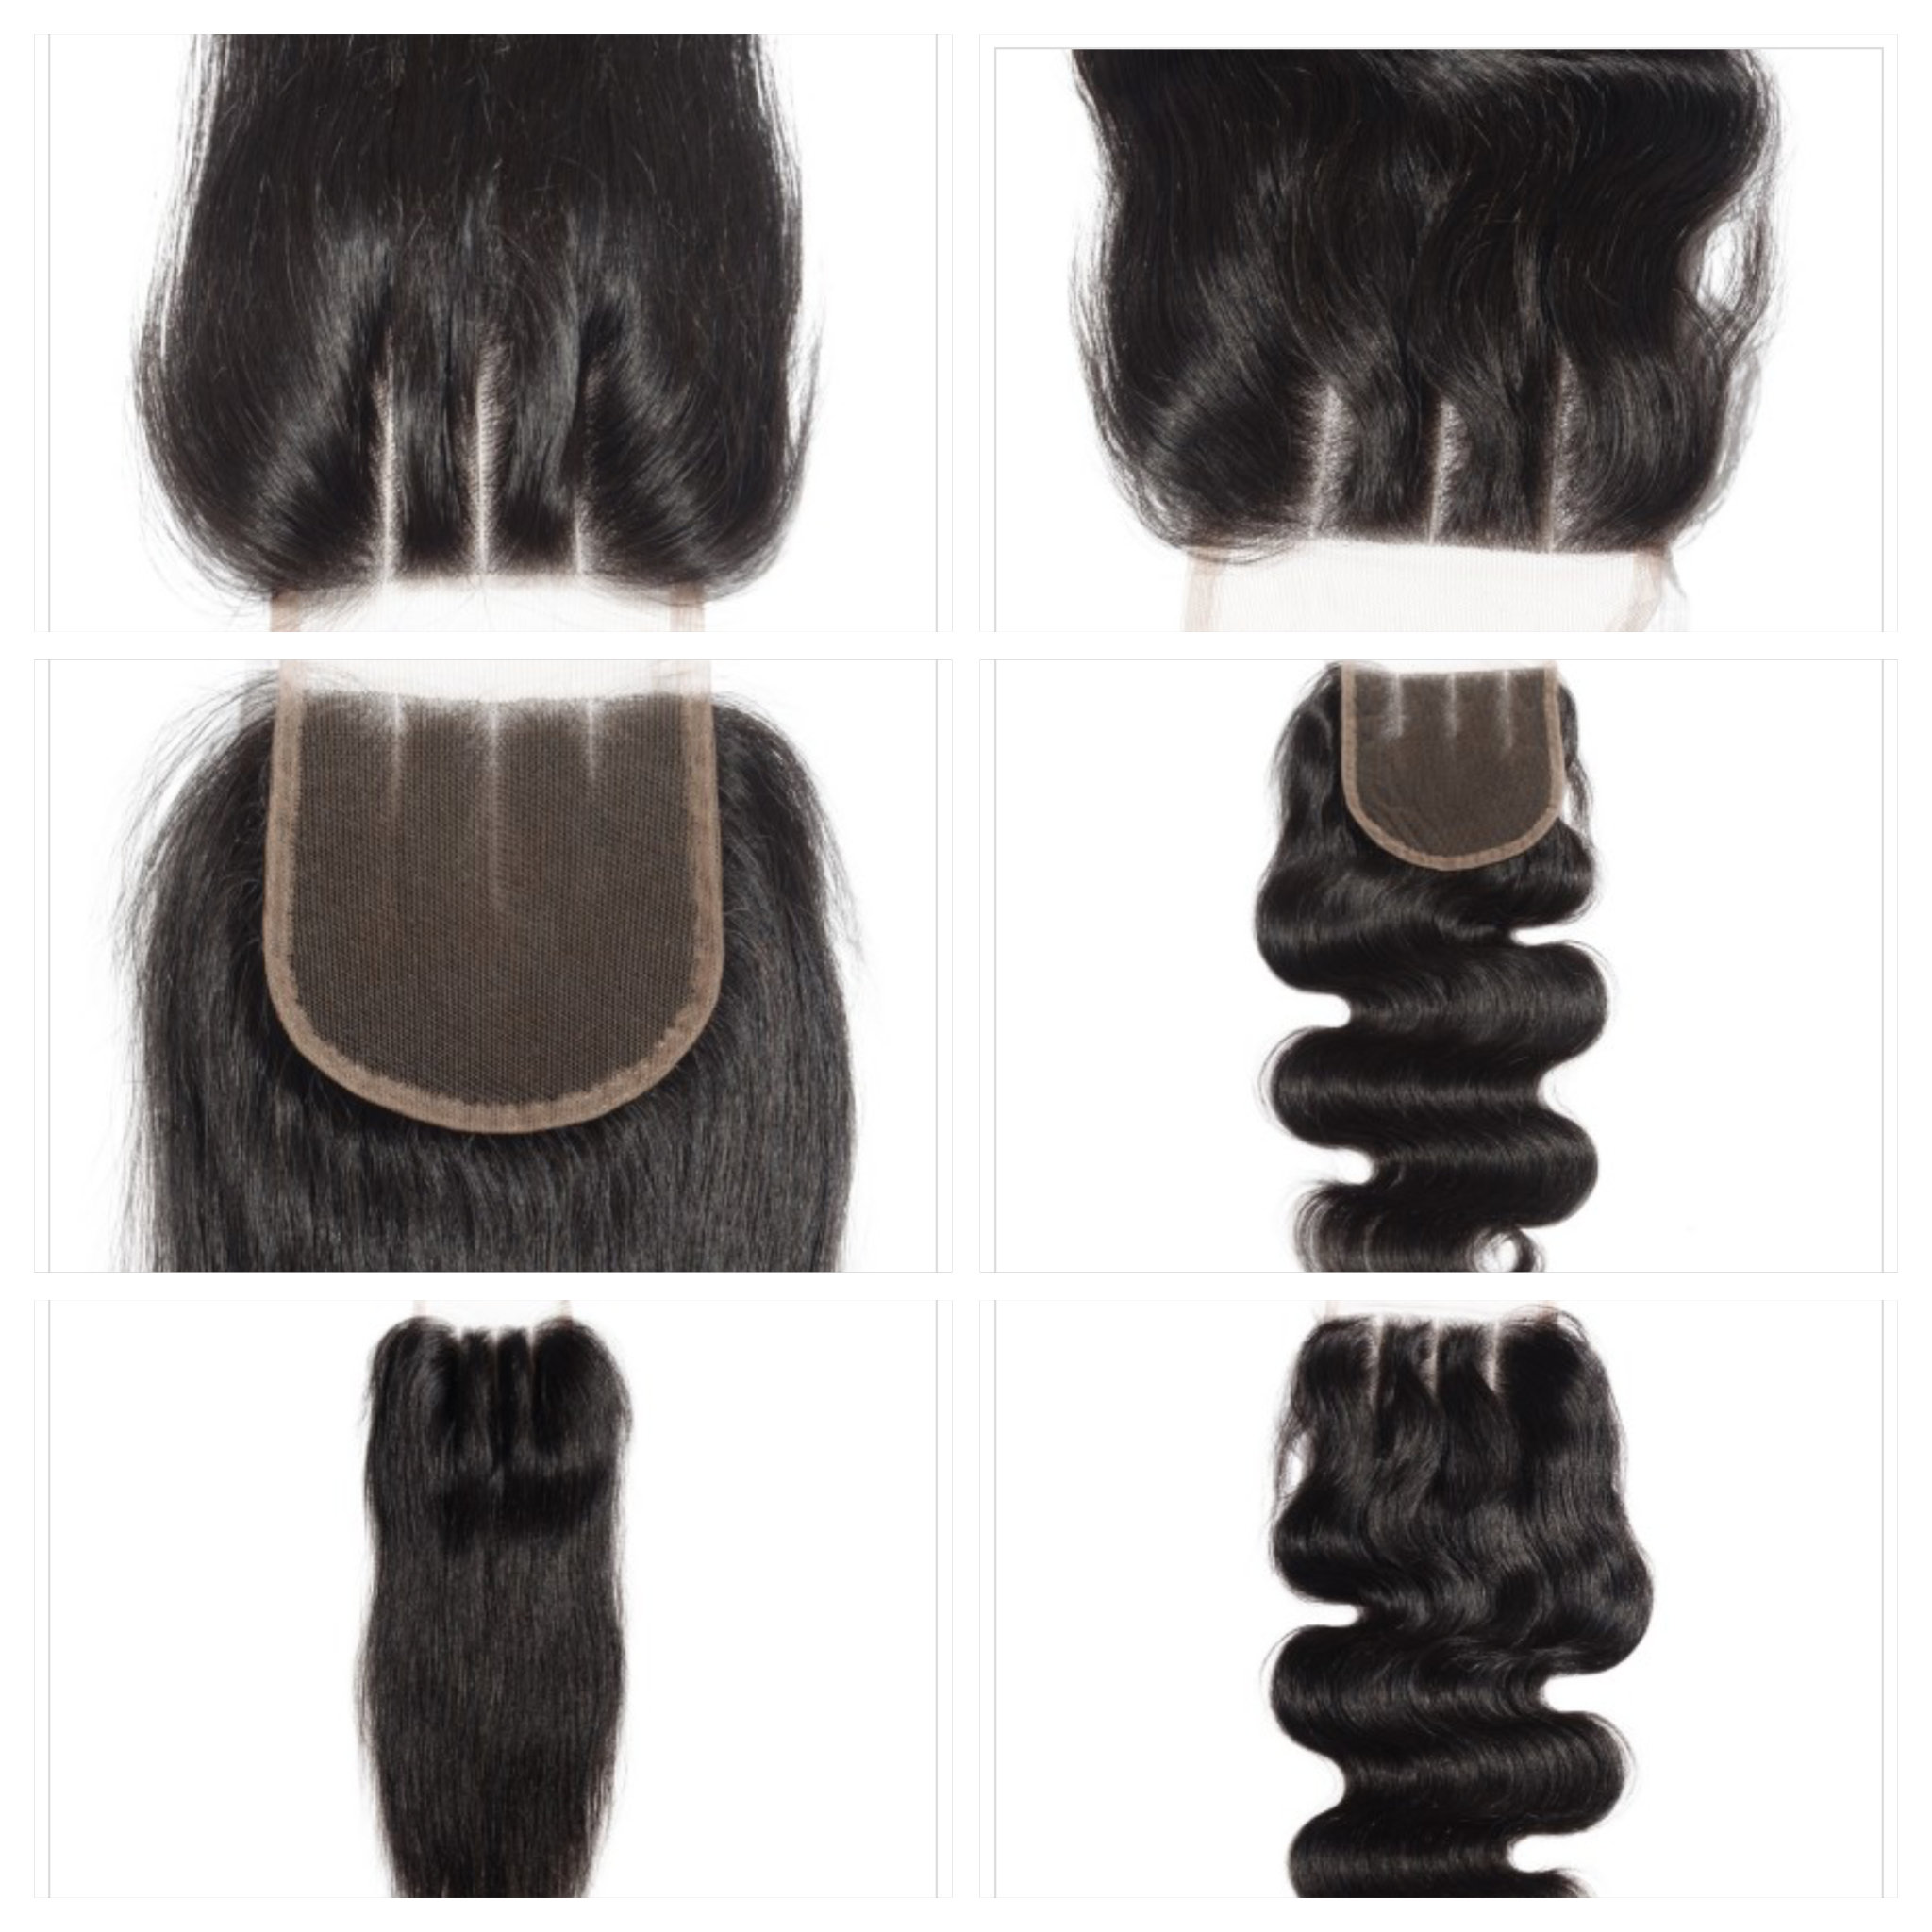 3 Part Lace Closure straight or body wave (12 inches) 00001